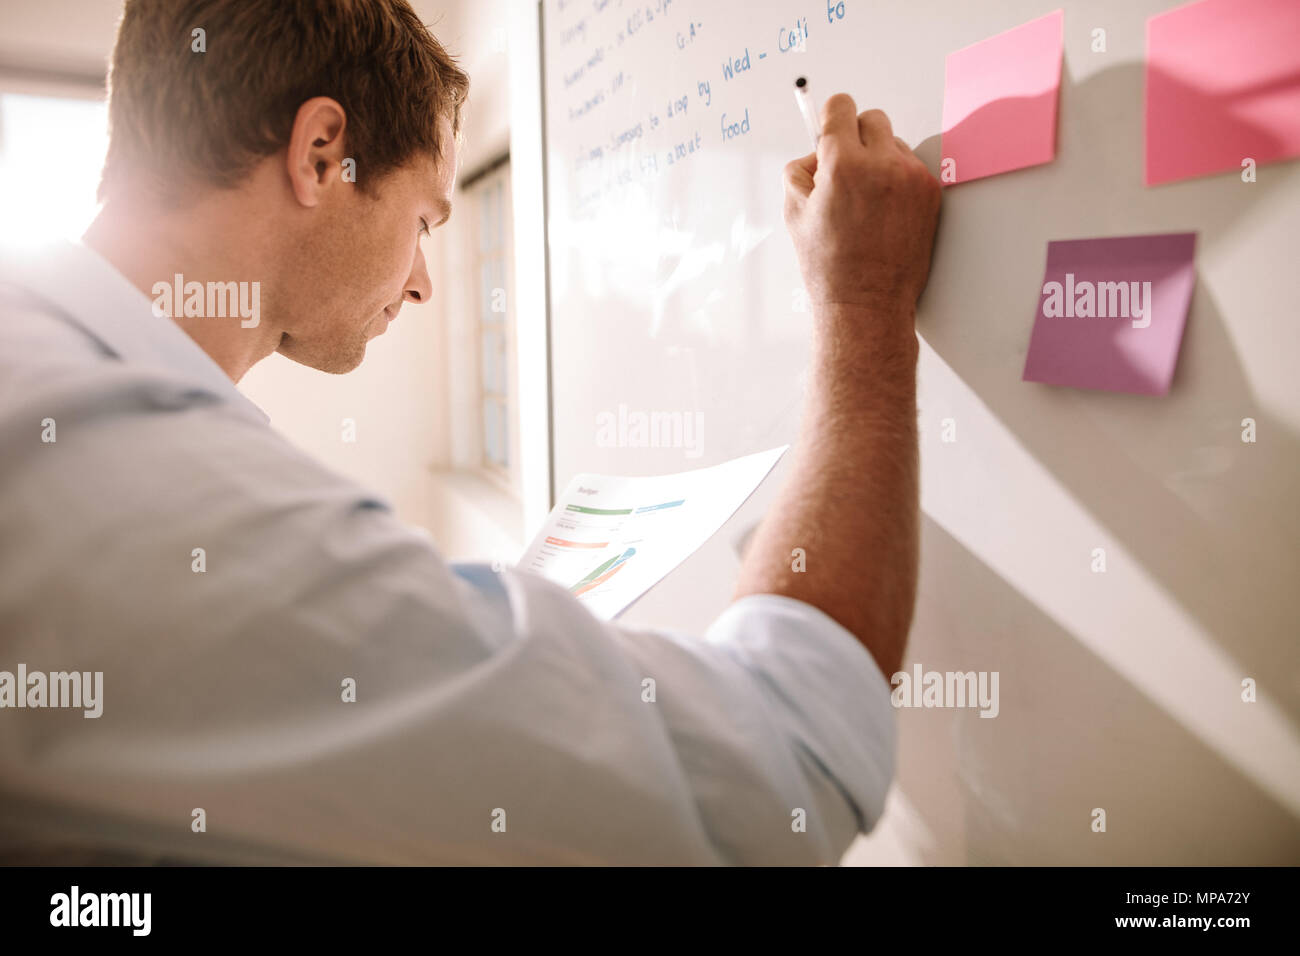 Entrepreneur making notes on a board and placing colorful sticky notes on the board. - Stock Image